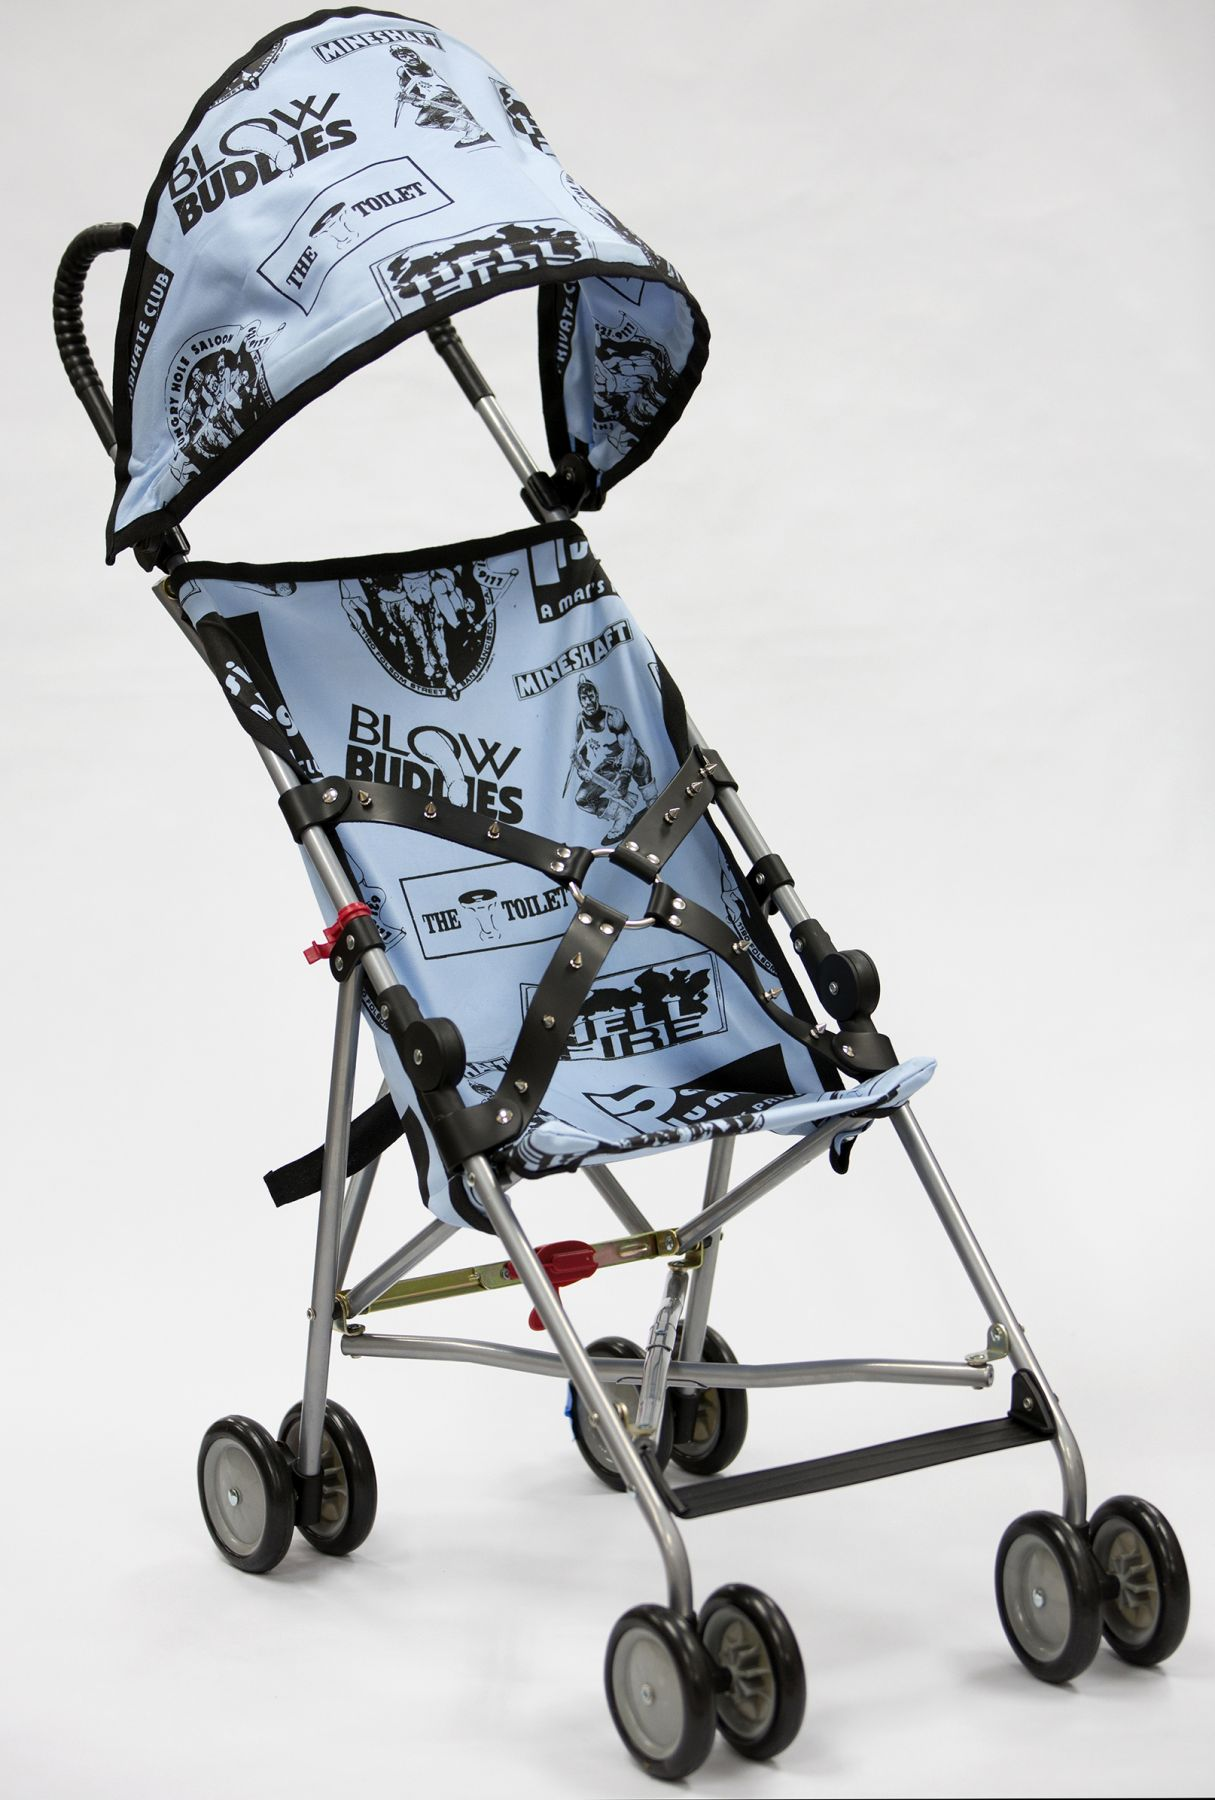 Stroller sculpture by John Waters for sale at a New York City gallery